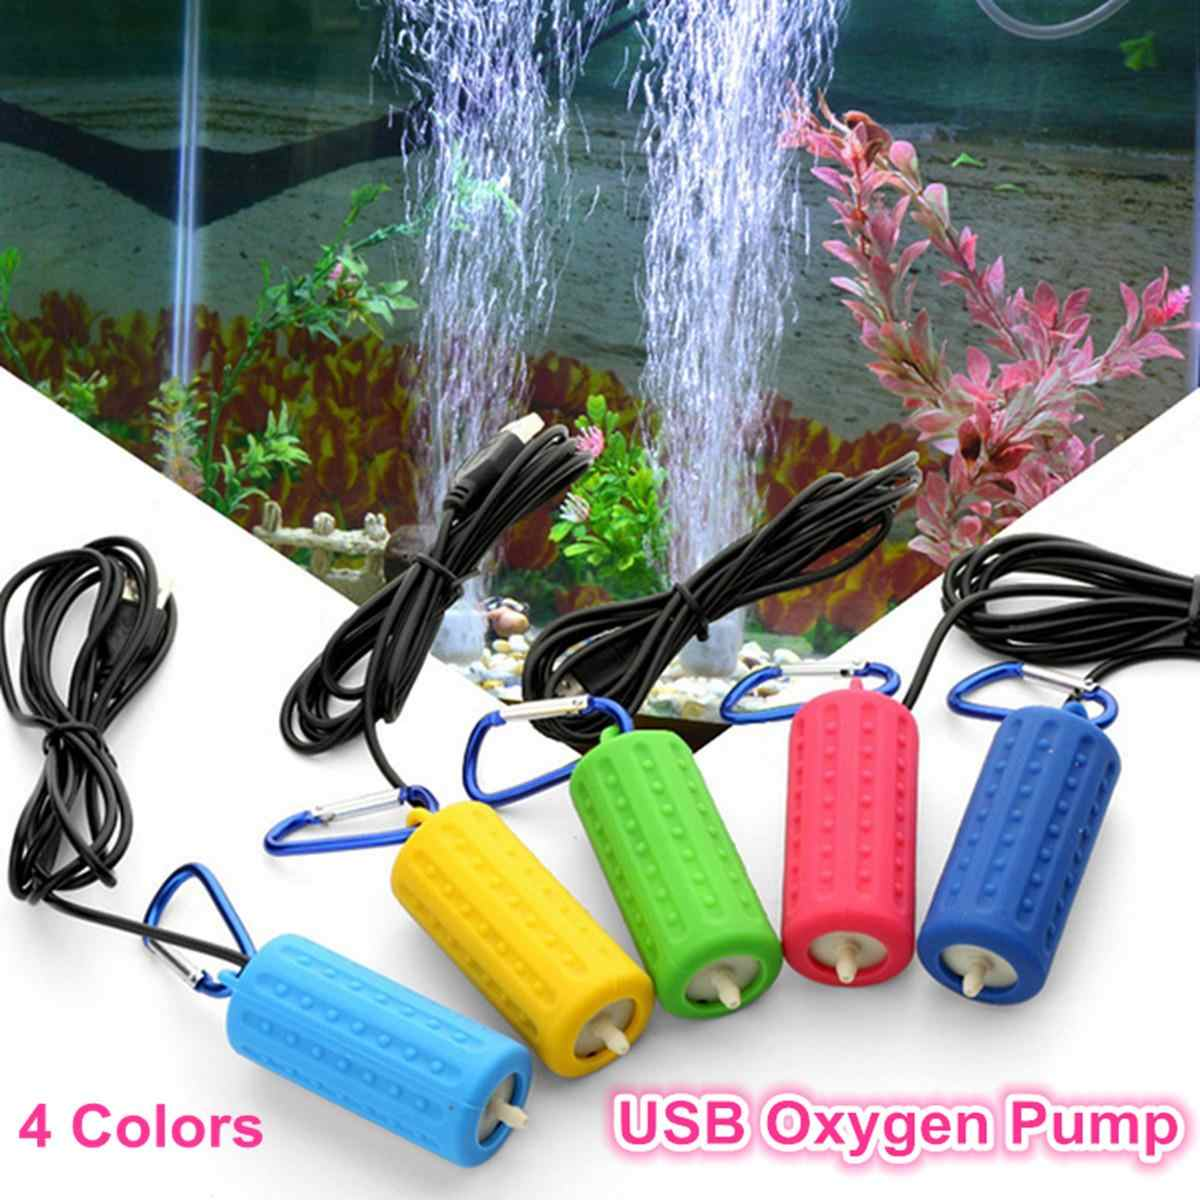 Portable Mini USB Aquarium Fish Tank Oxygen Air Pump Mute Energy Saving Supplies Aquatic Terrarium Fish Tank Accessories